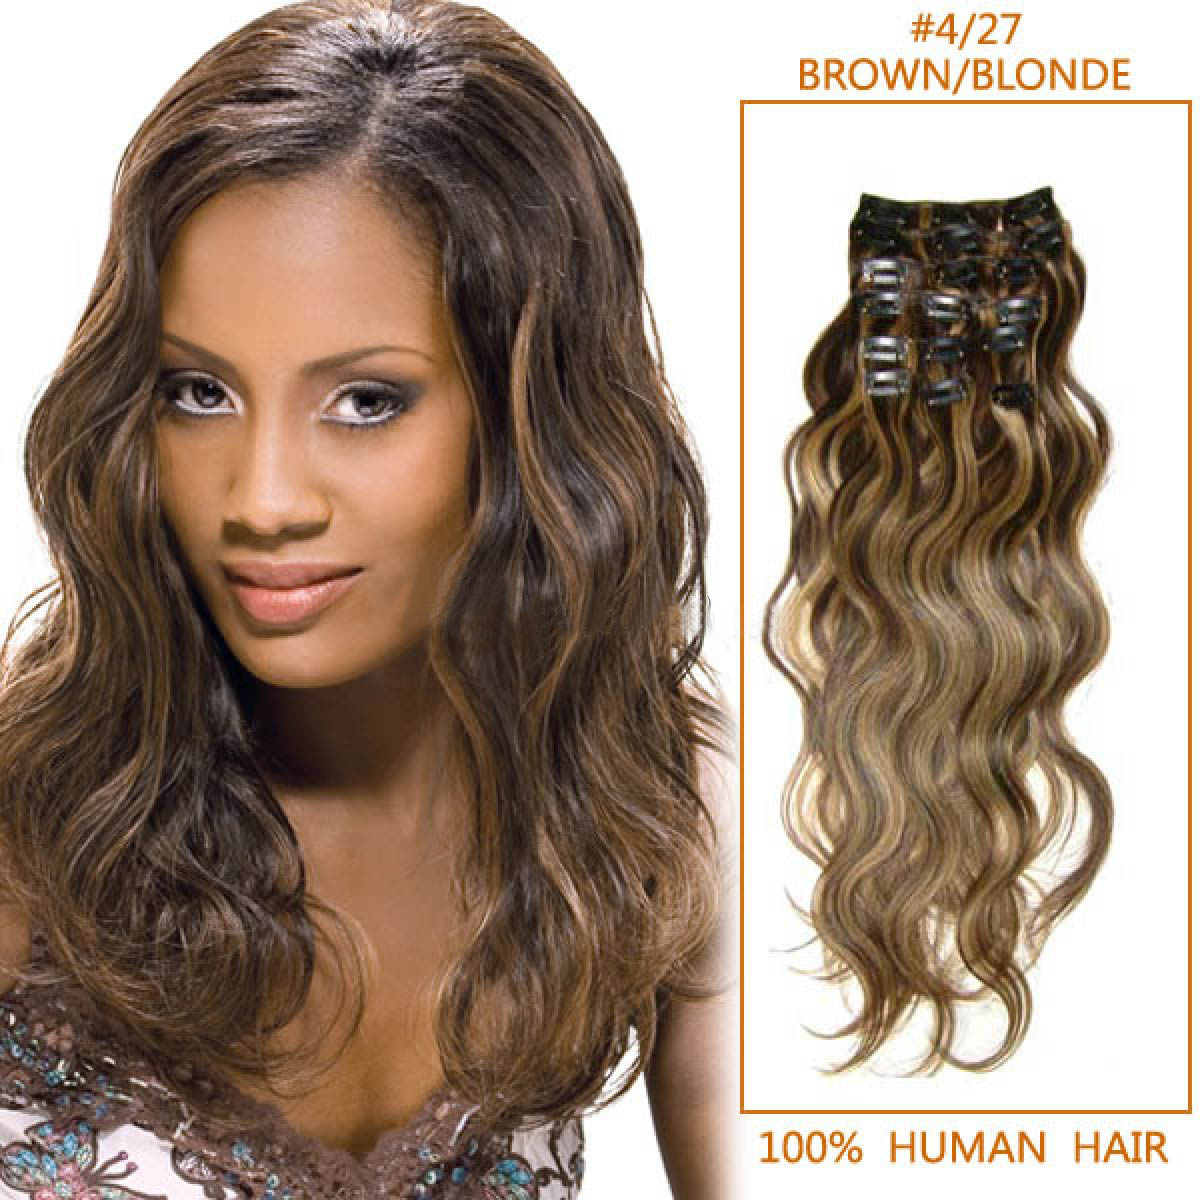 26 Inch #4/27 Brown/Blonde Stylish Clip In Hair Extensions Body Wave 7 Pcs